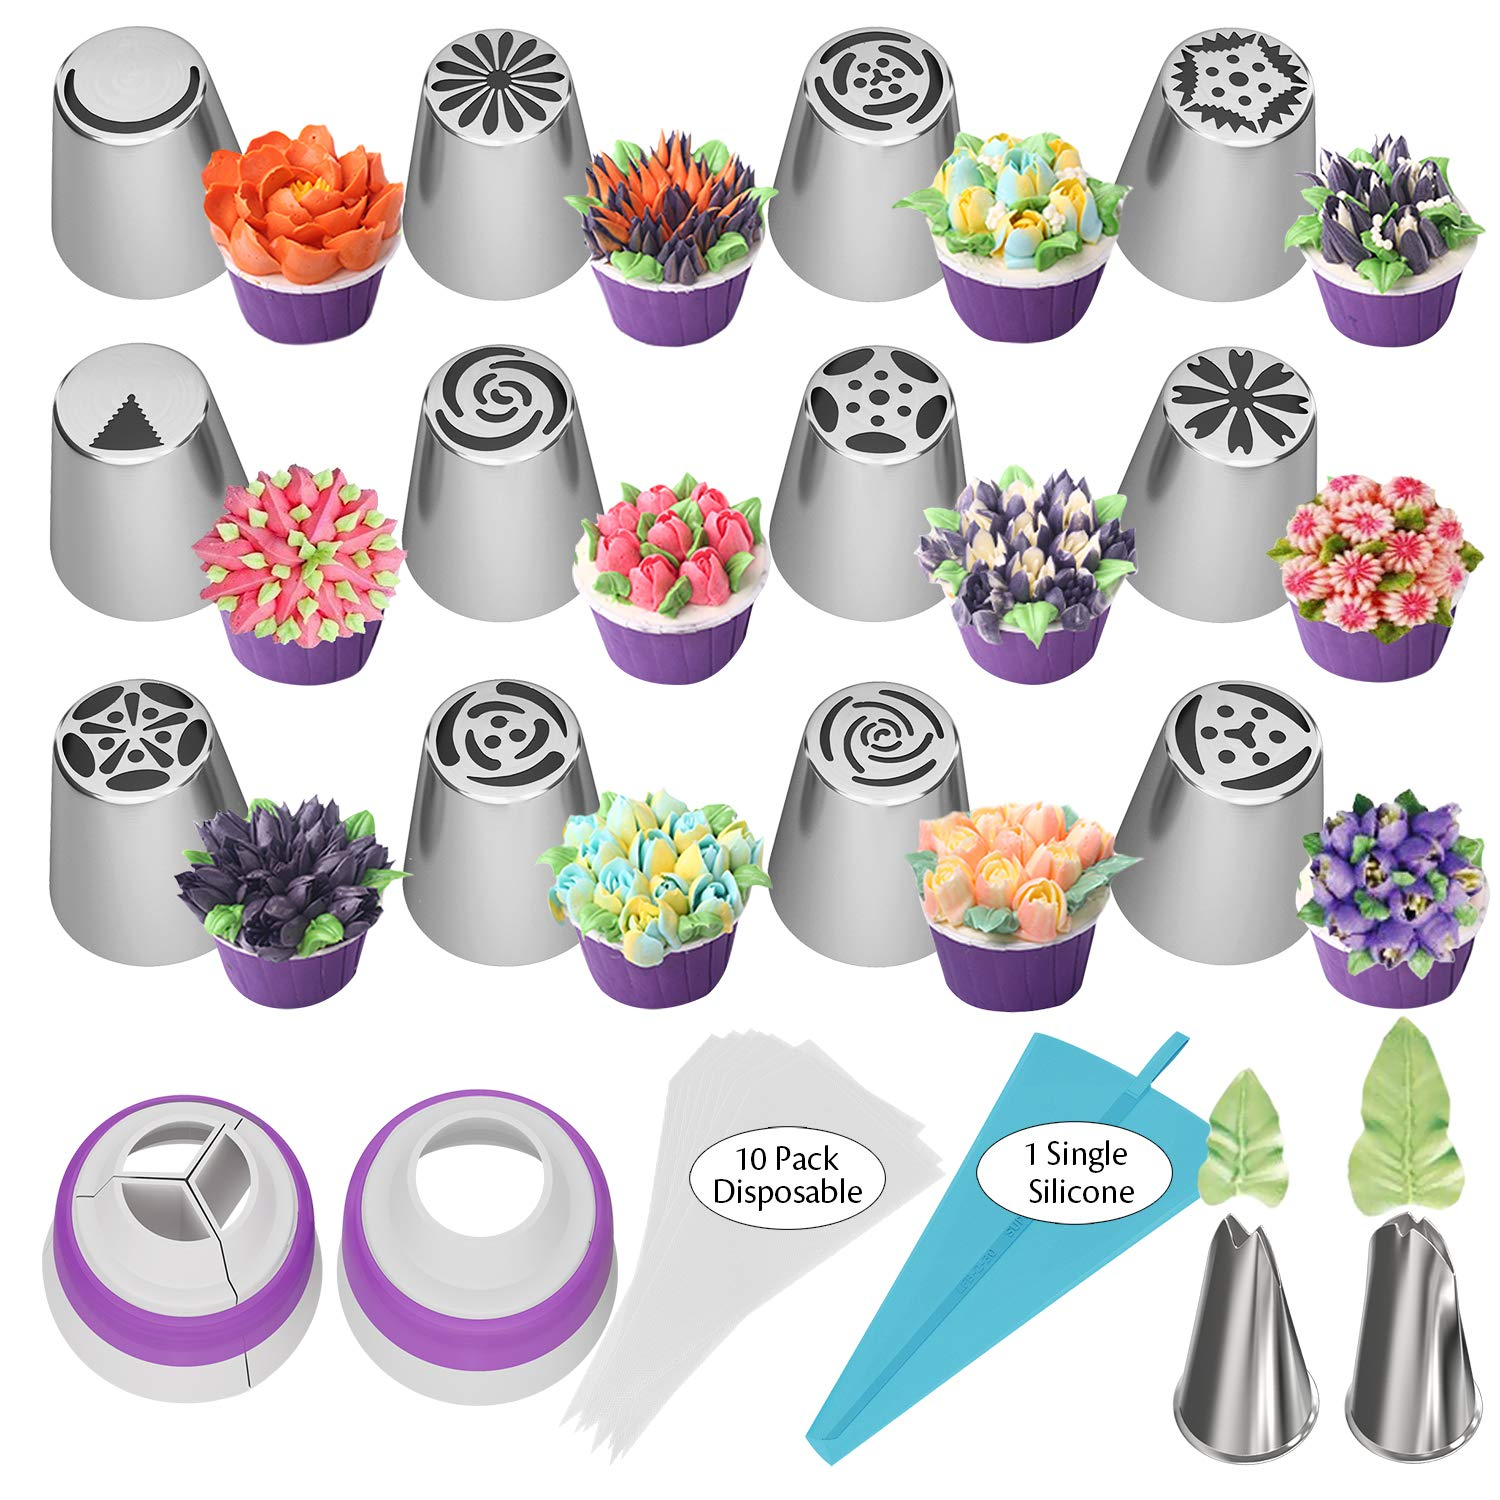 Russian Piping Tips 27pcs Baking Supplies Set Cake Decorating Tips for Cupcake Cookies Birthday Party, 12 Icing Tips 2 Leaf Piping Tips 2 Couplers 10 Pastry Baking Bags by Ouddy